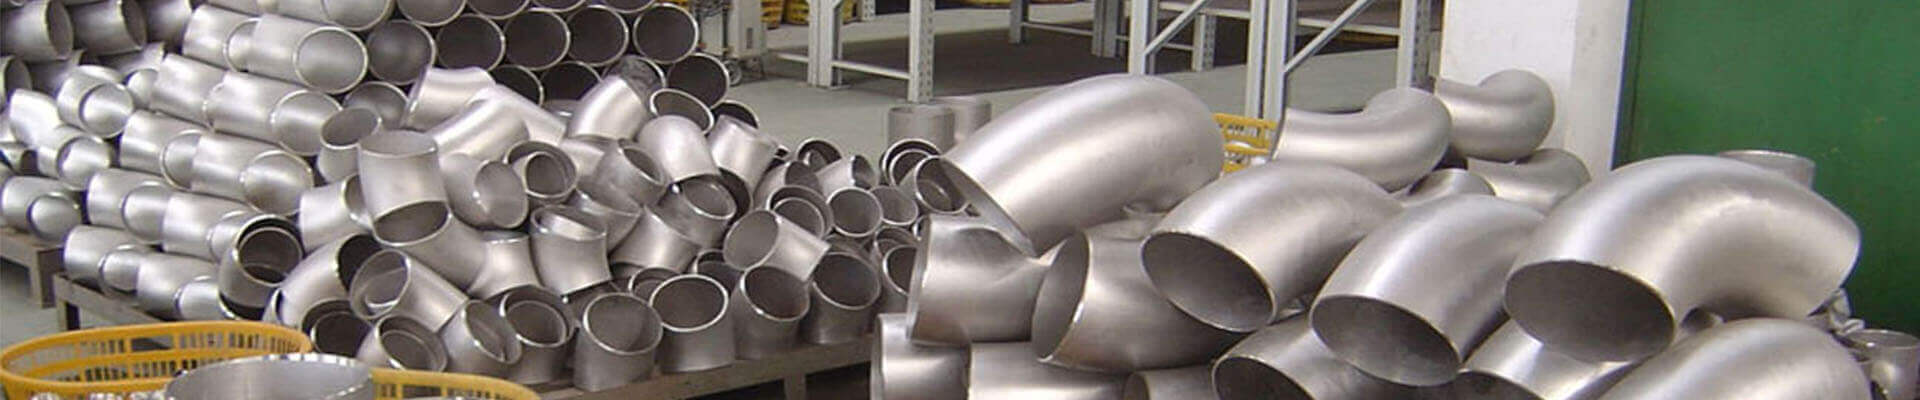 Pipe Fittings banner